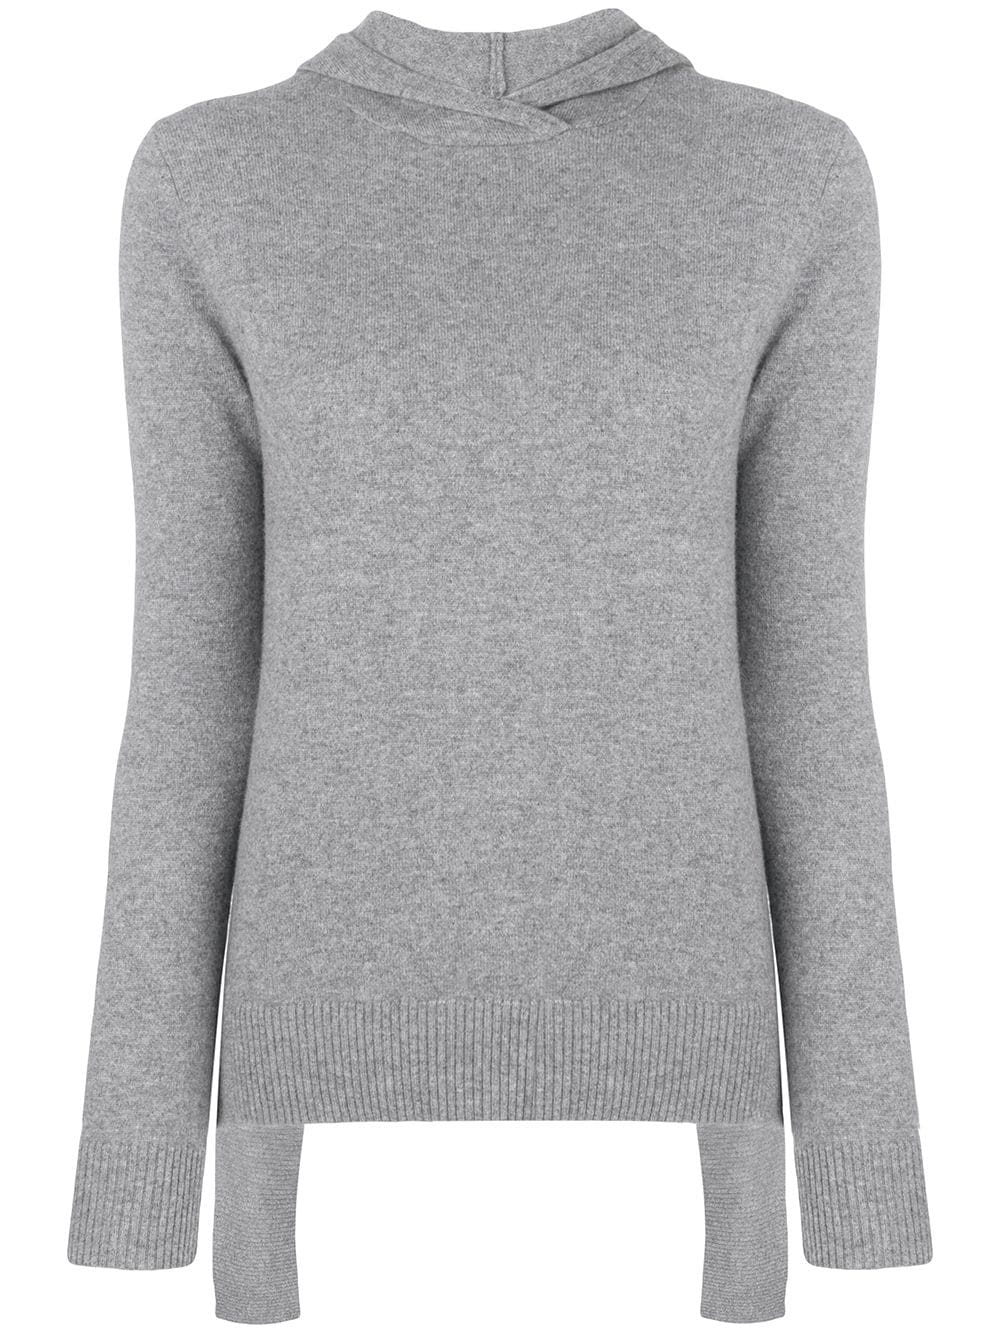 Cashmere In Love   Mabel hooded jumper   Clouty